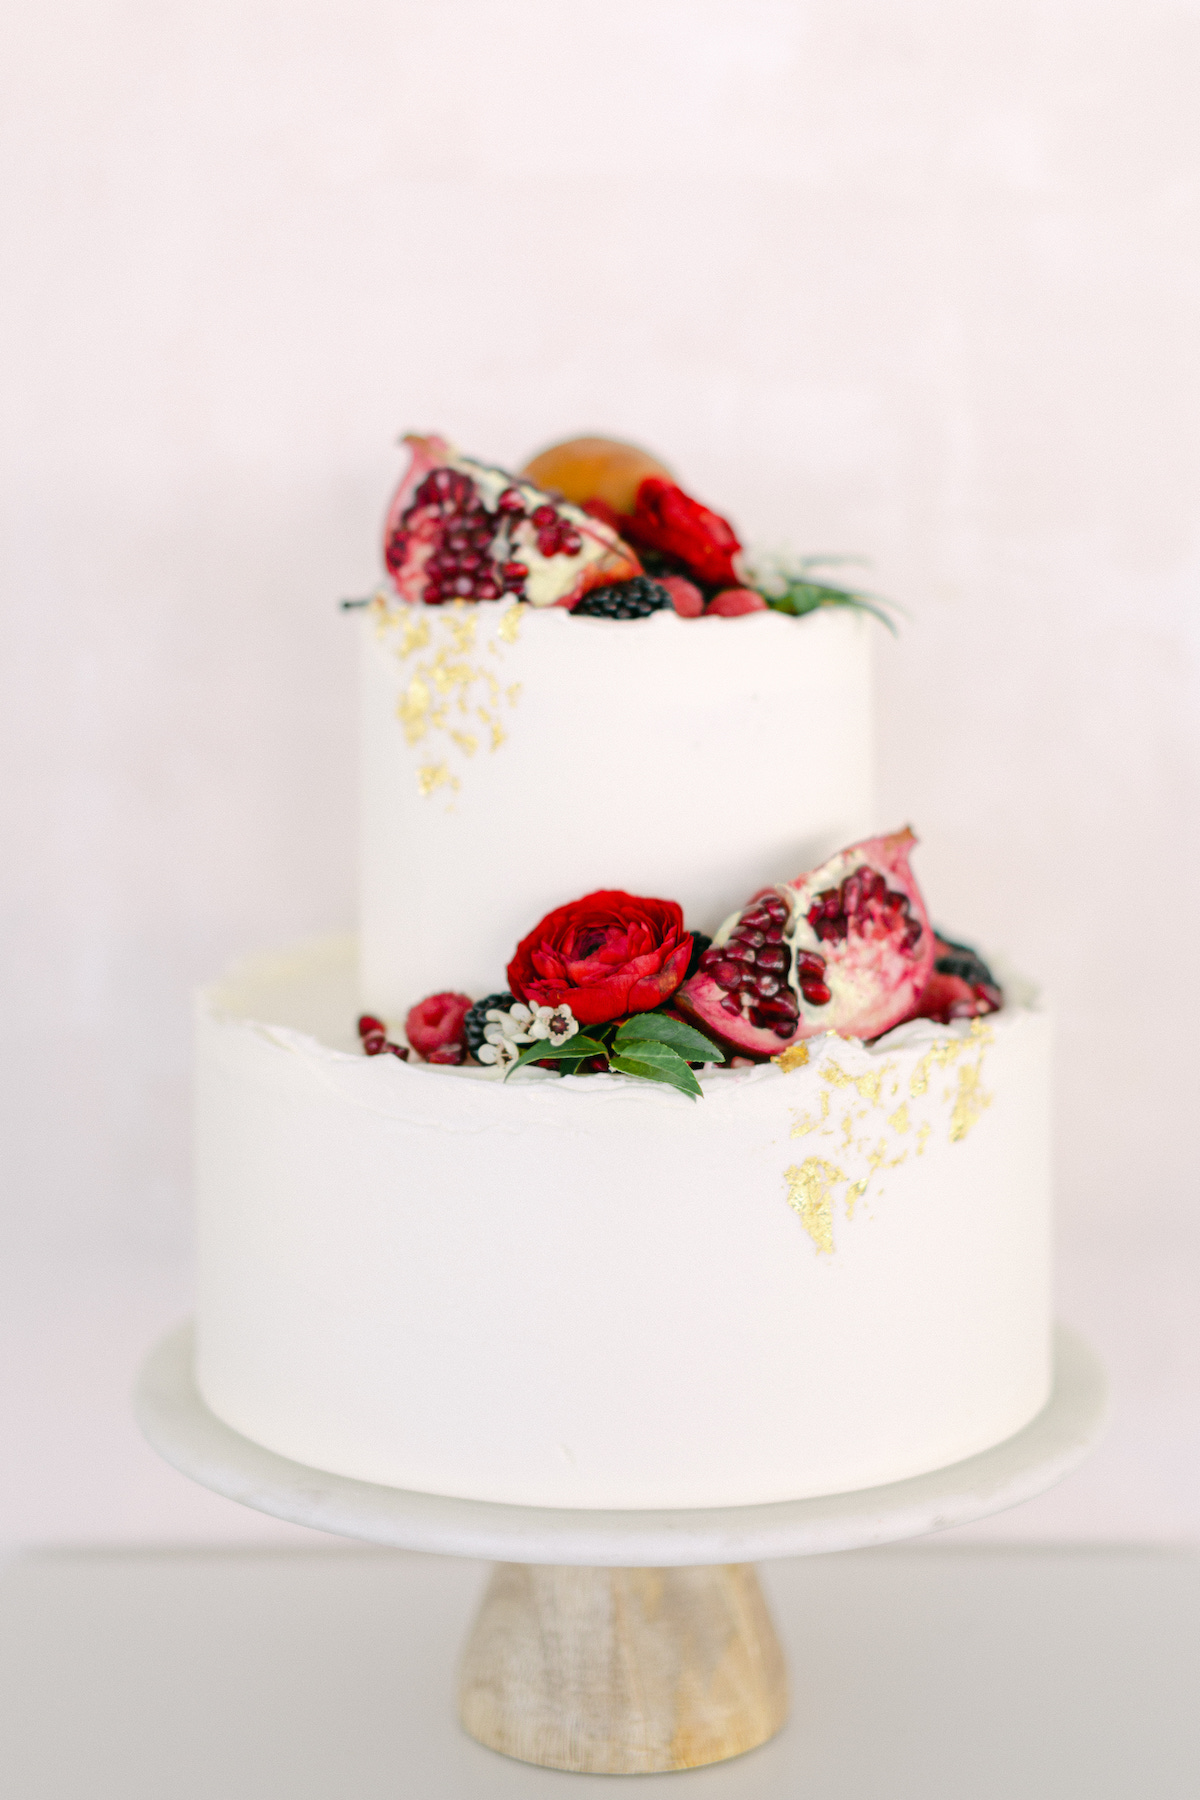 White and red winter wedding cake - 5th Fine Art Photography